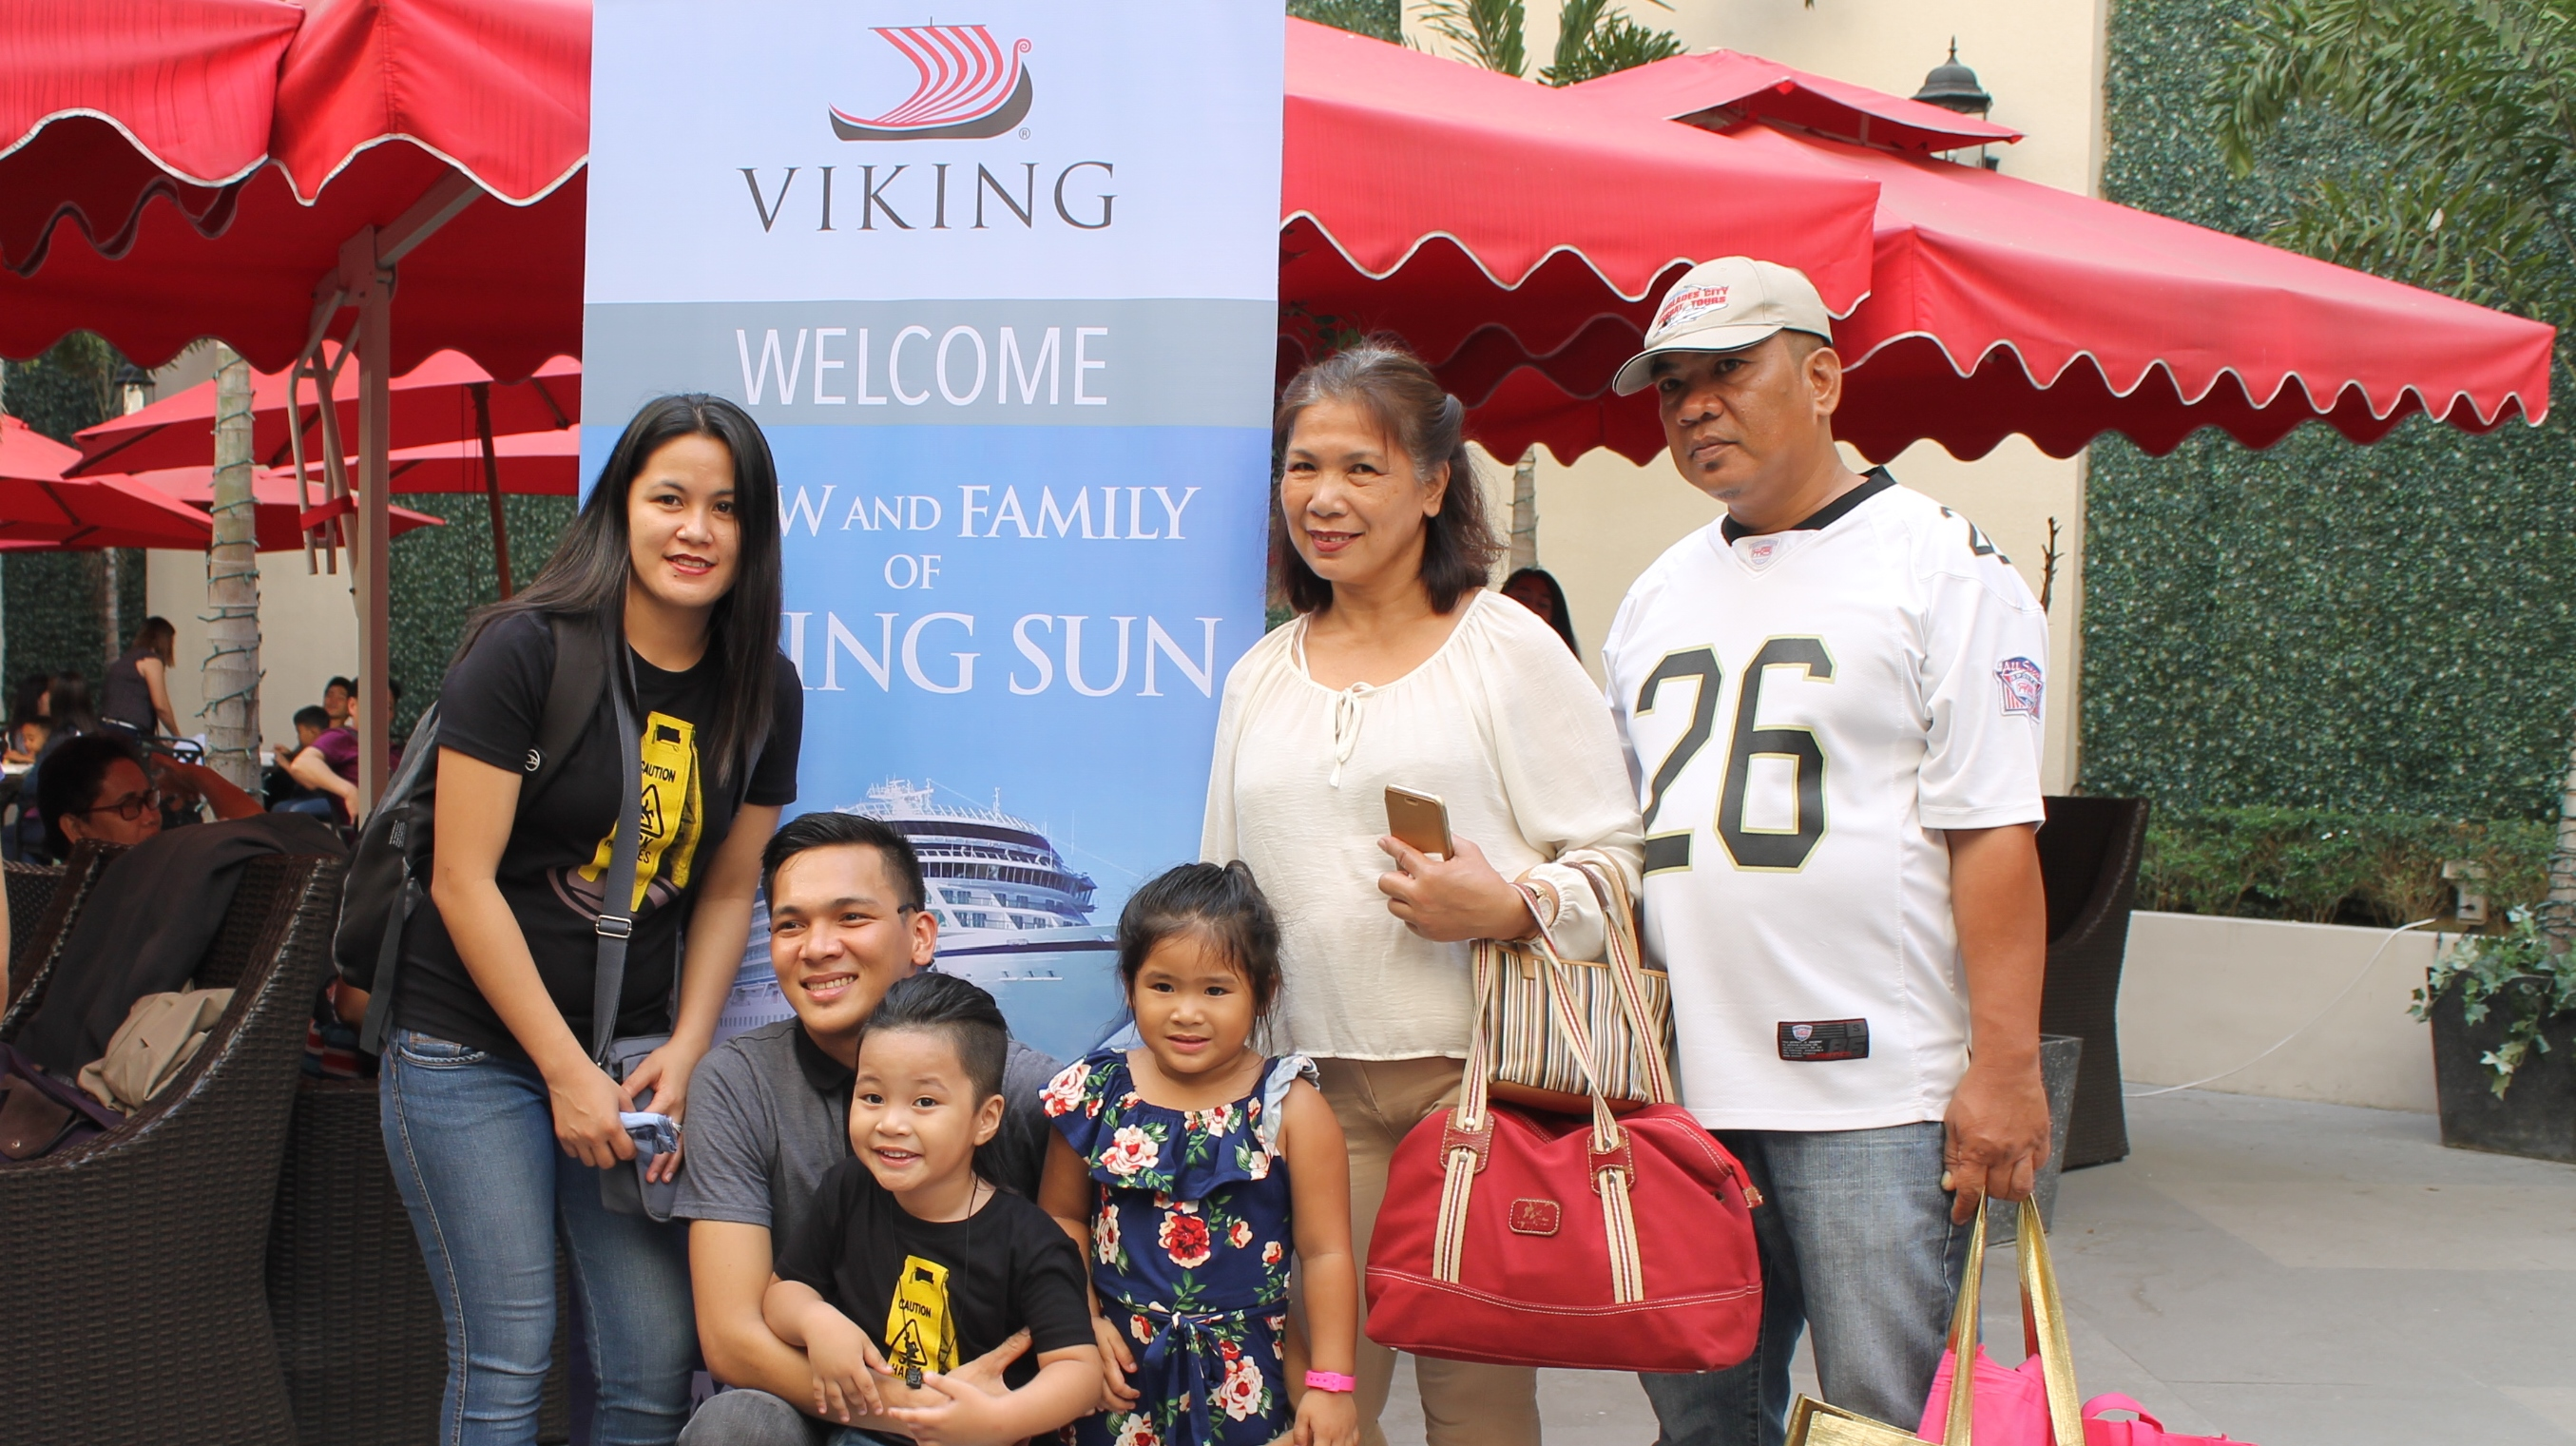 19 03072018 VIKING SUN MAIDEN CALL PHOTOS.JPG